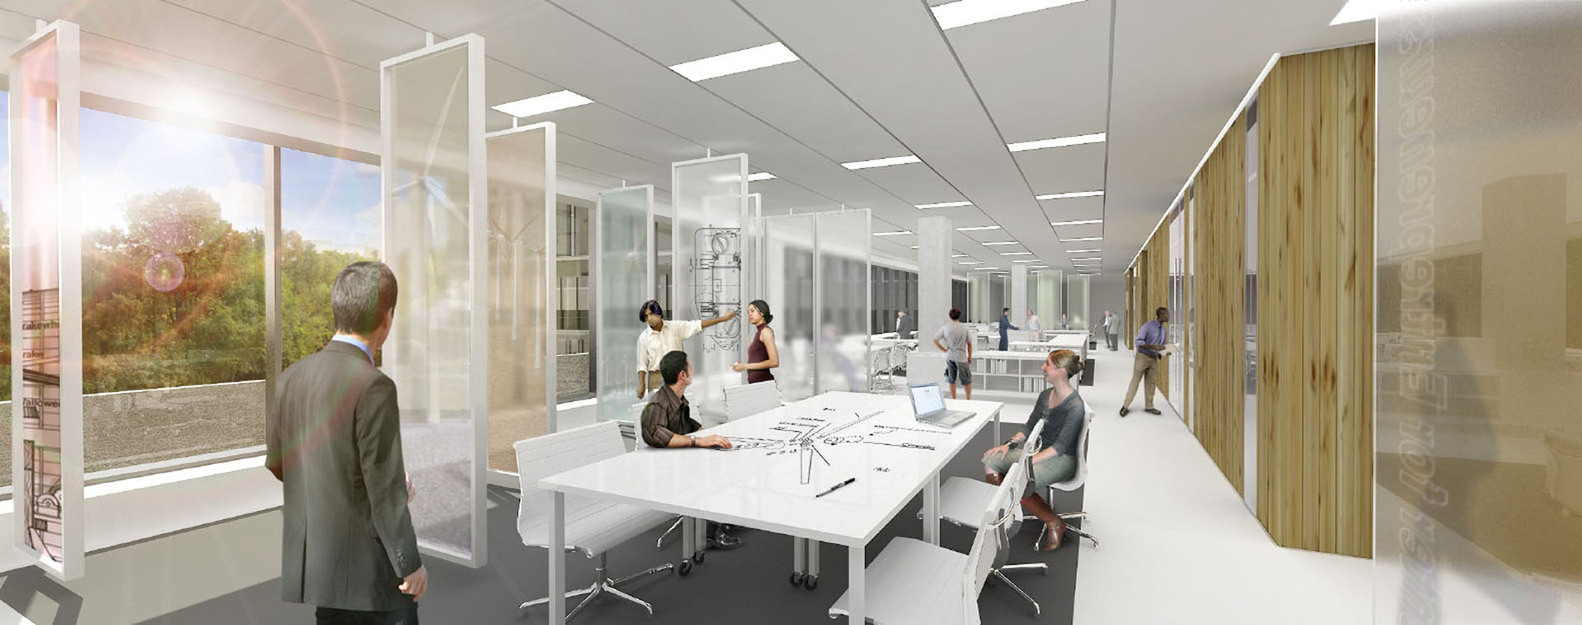 Ennead Architects Reveals Designs For Engineering Center At University Of Texas Austin Courtesy